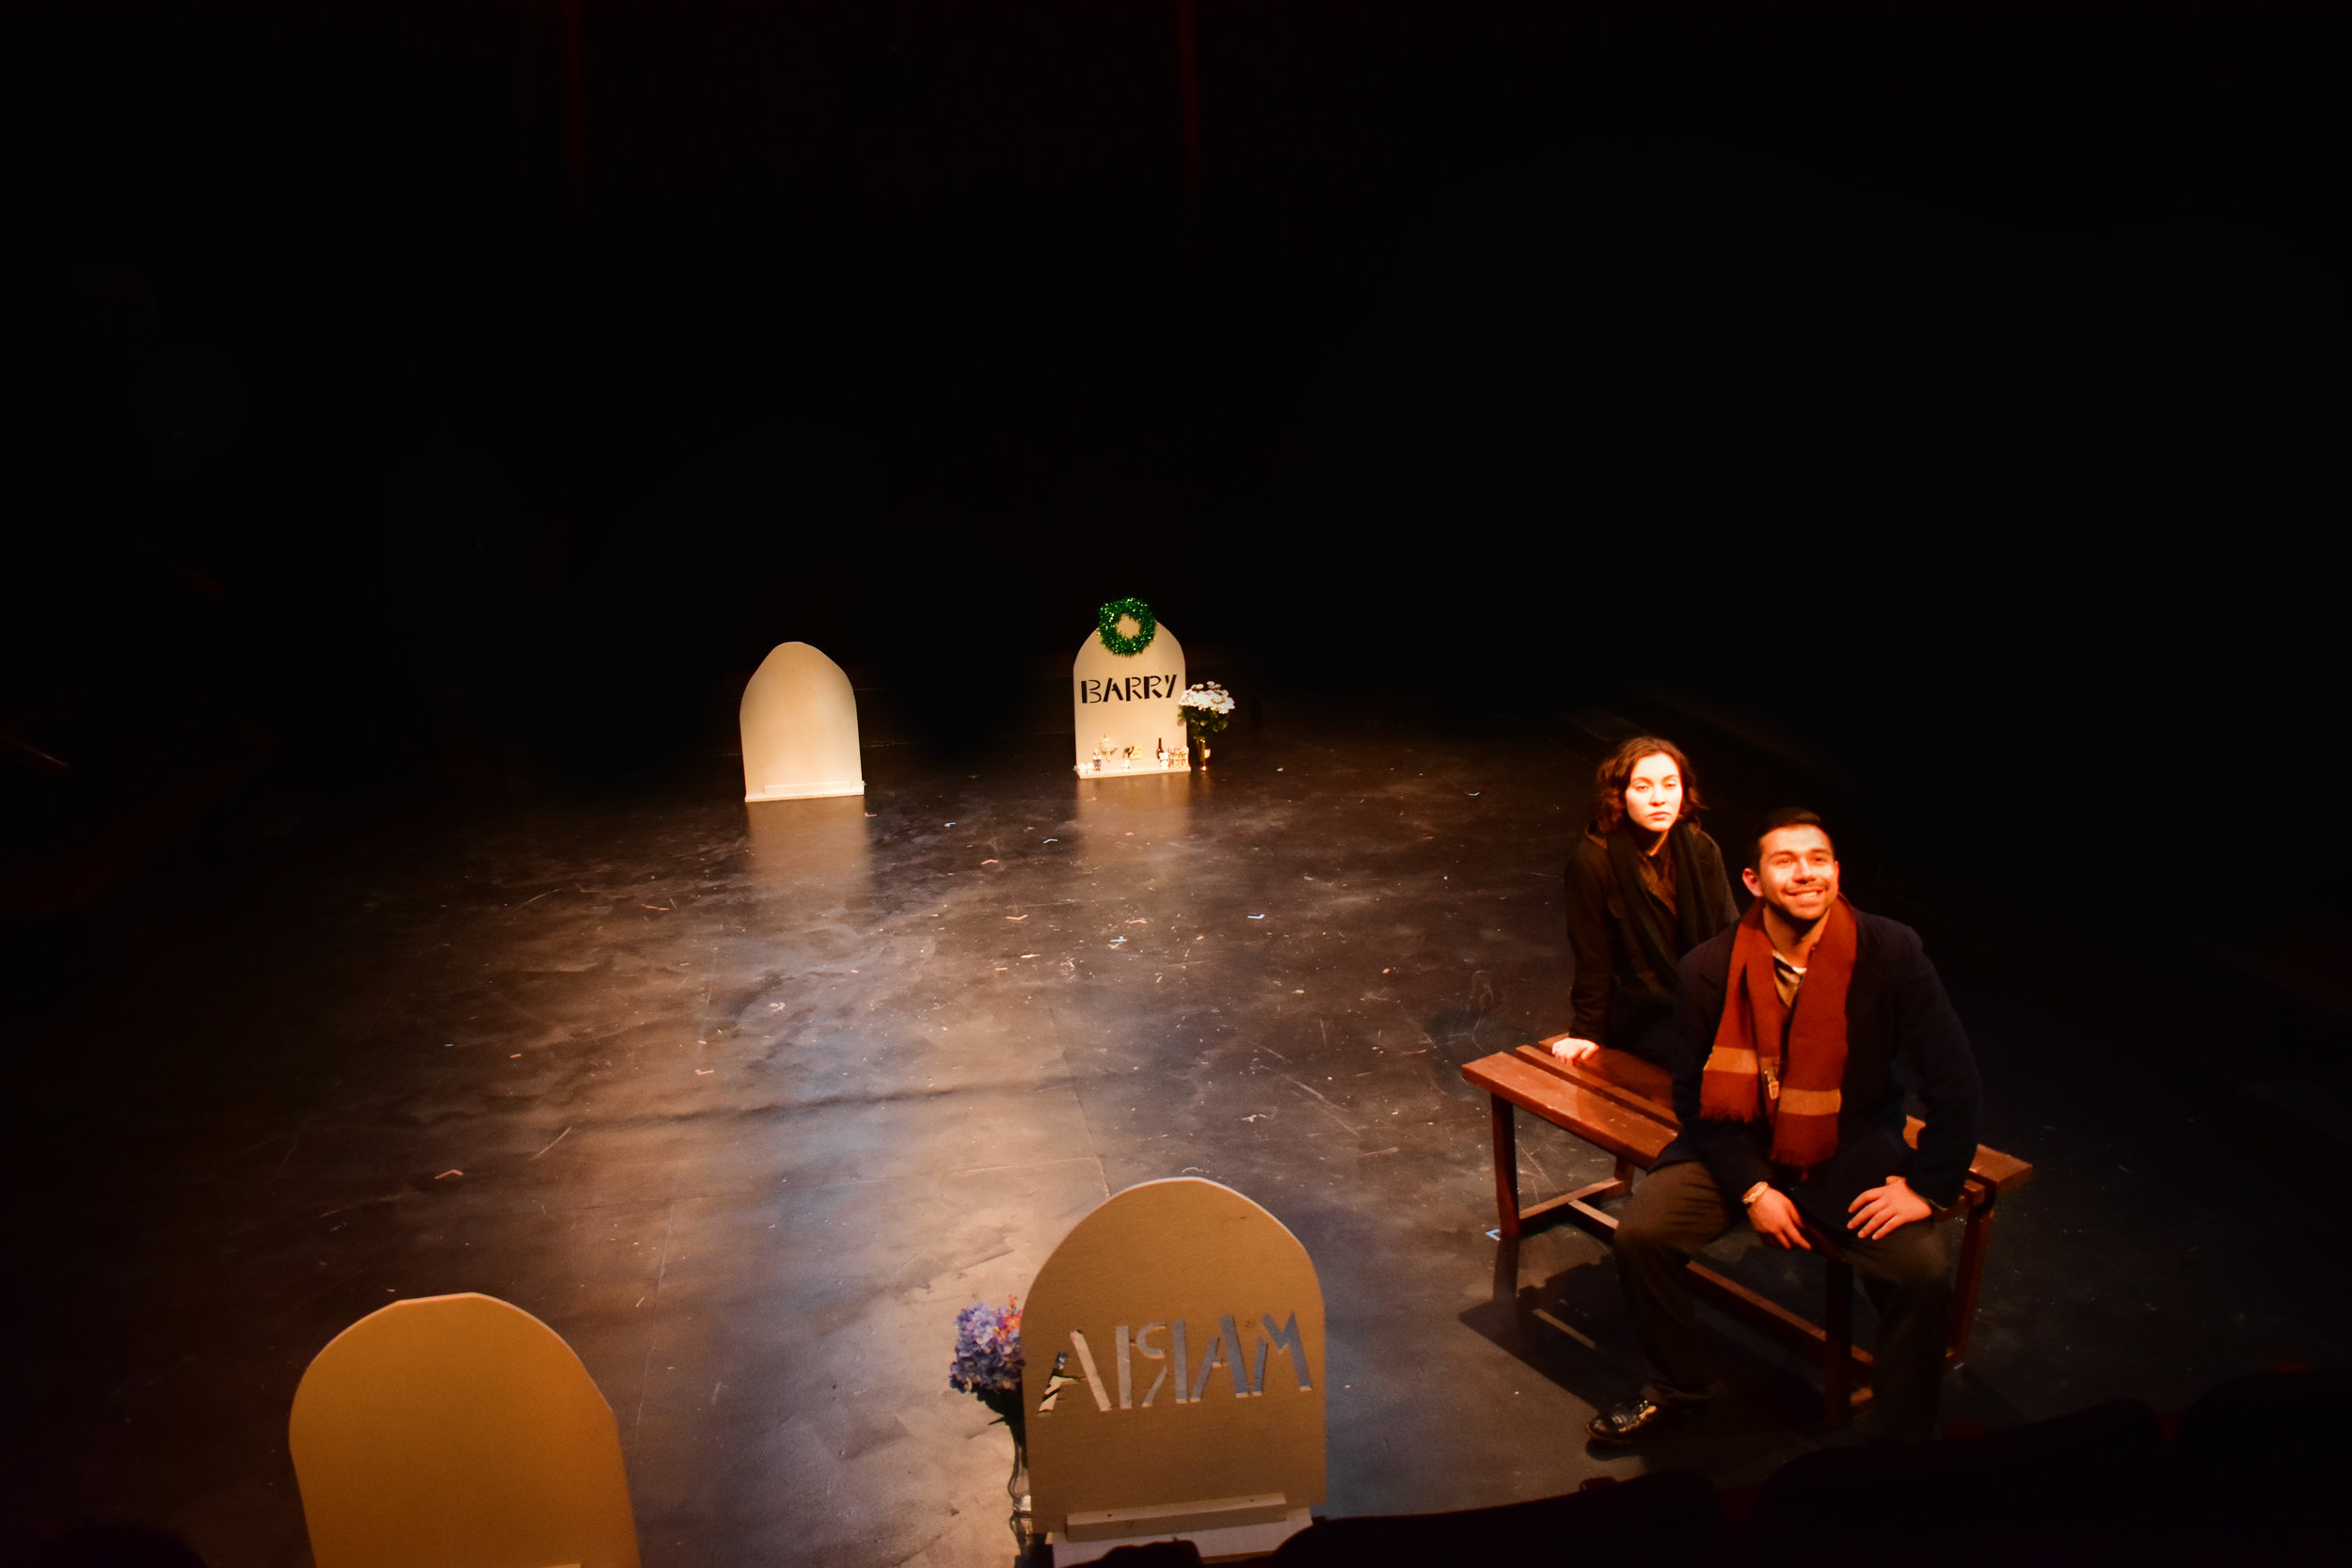 More Than a Headstone   Directed by Mykkaela Garcia  Photo by Lucinda Culver, 2018